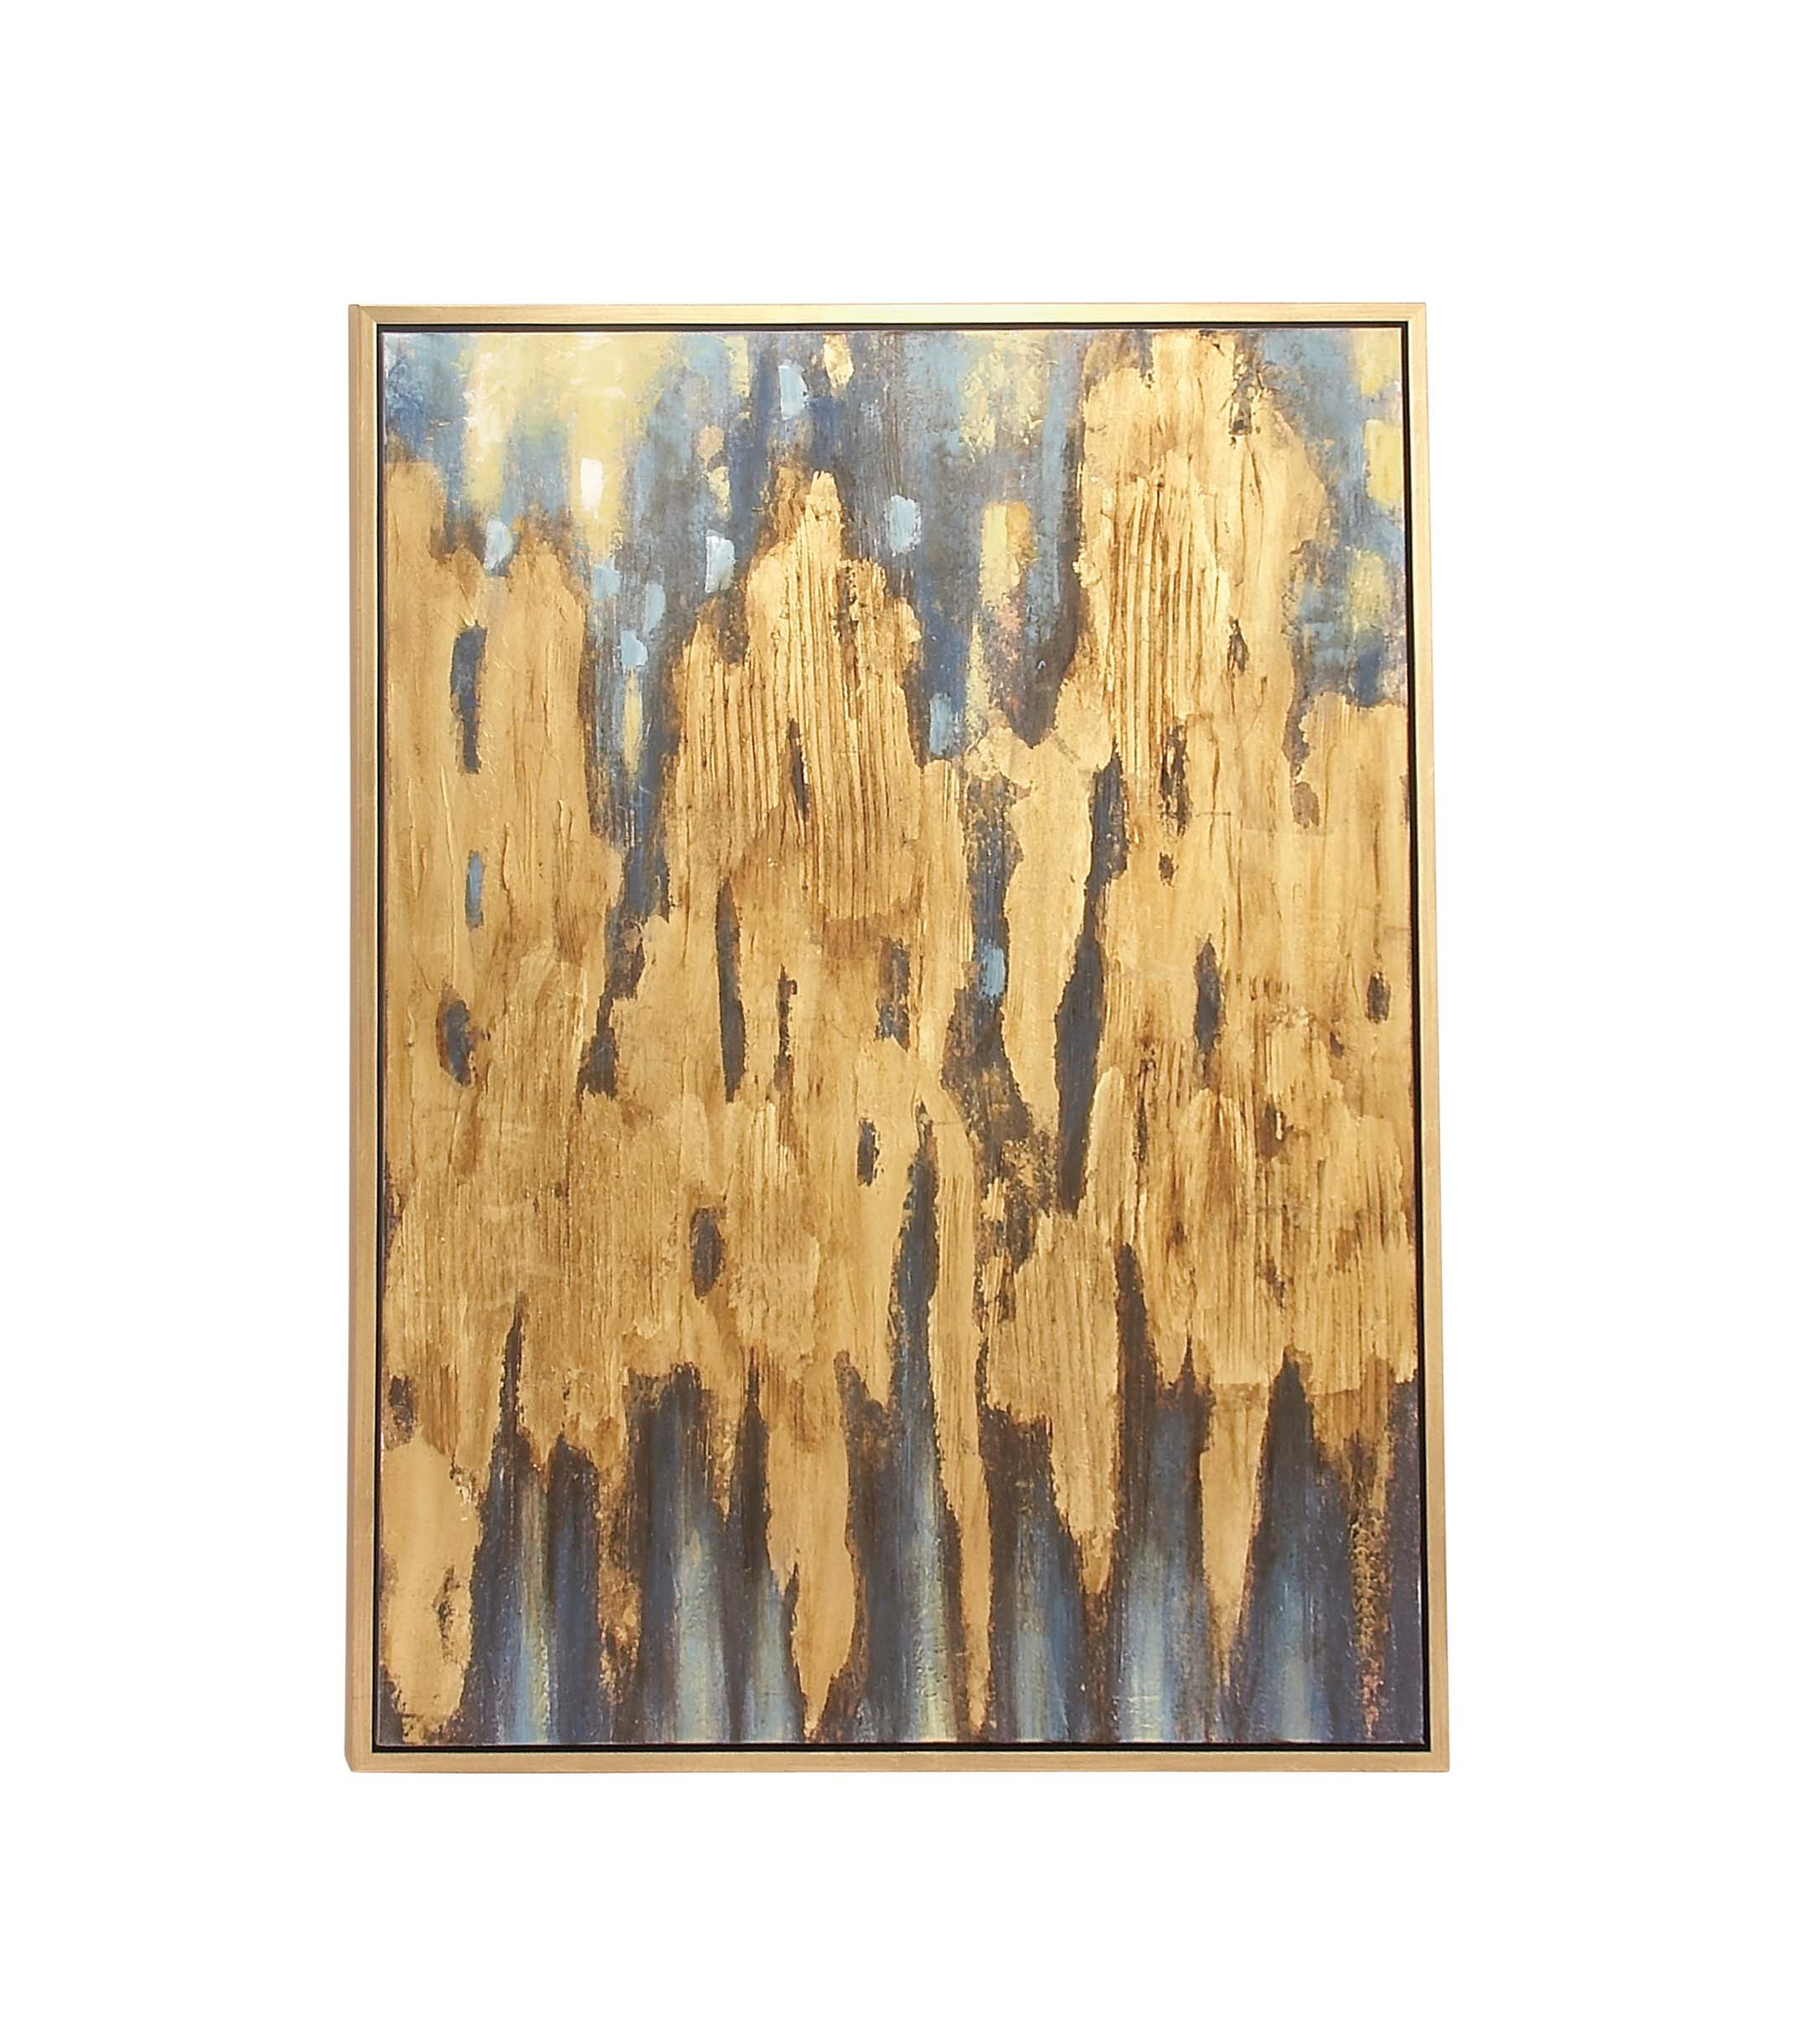 Decmode Glam 47 X 36 Inch Framed Abstract Canvas Art, Brown by DecMode